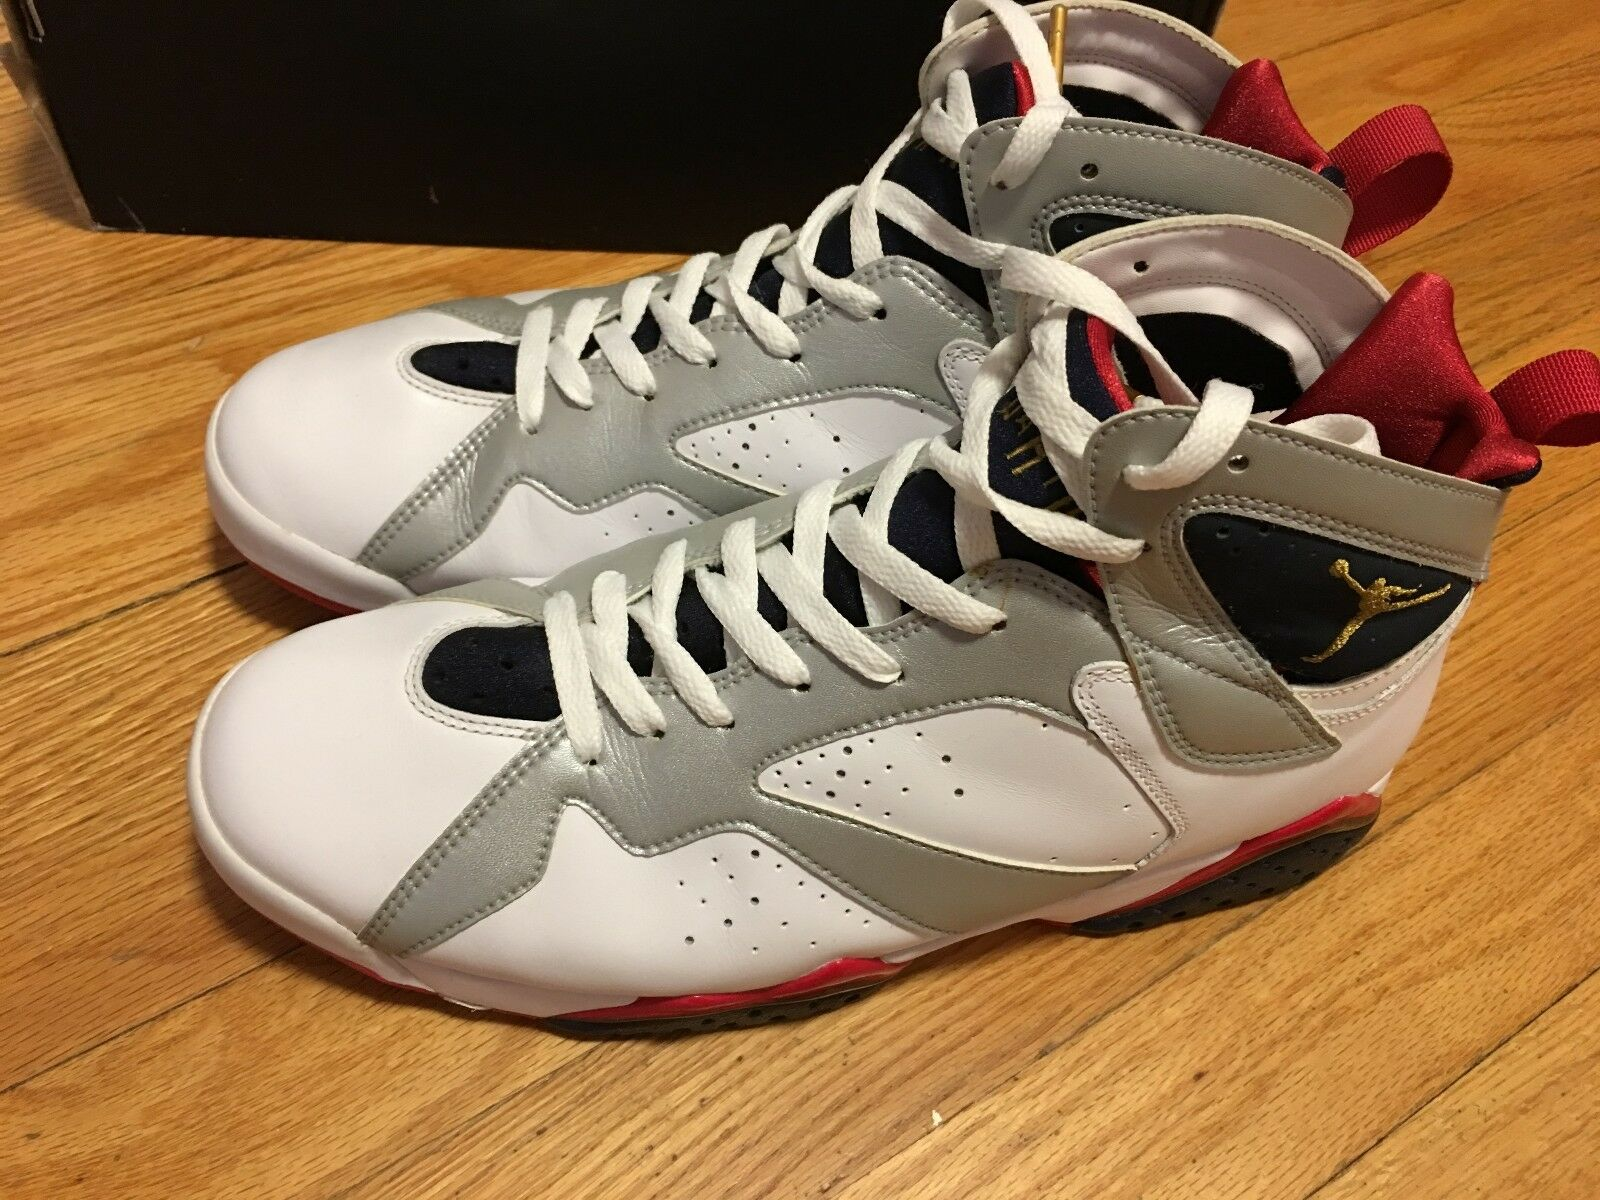 Jordan retro 7 VII Olympic Dimensione 10.5 VNDS Excellent condition